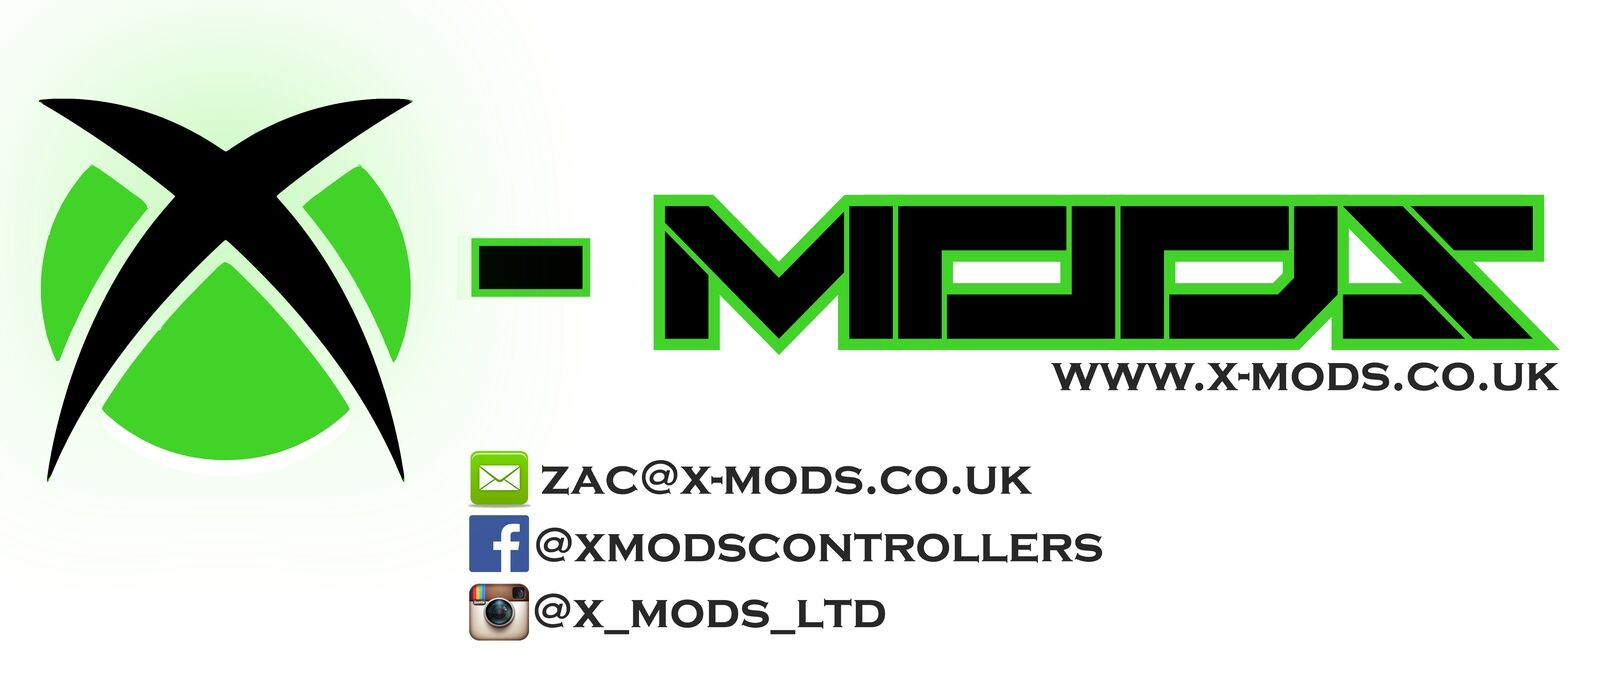 X-Mods UK LTD